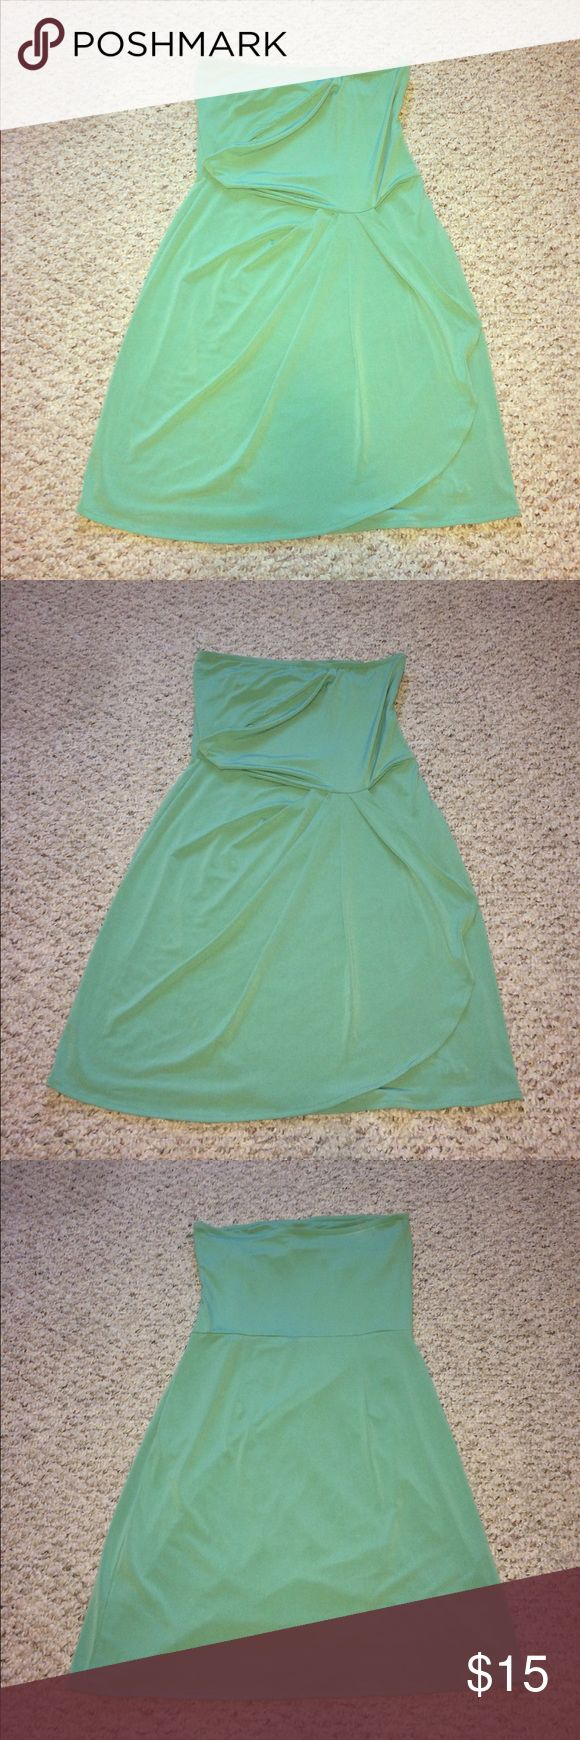 Adorable mint Banana Republic strapless dress - 6 Super cute mint strapless Banana Republic dress - 95% polyester - cute draping in front to give it some fun definition - perfect for summer events and casual summer weddings - built in bra and side zip with hook and eye closure - like new - size 6 Banana Republic Dresses Strapless